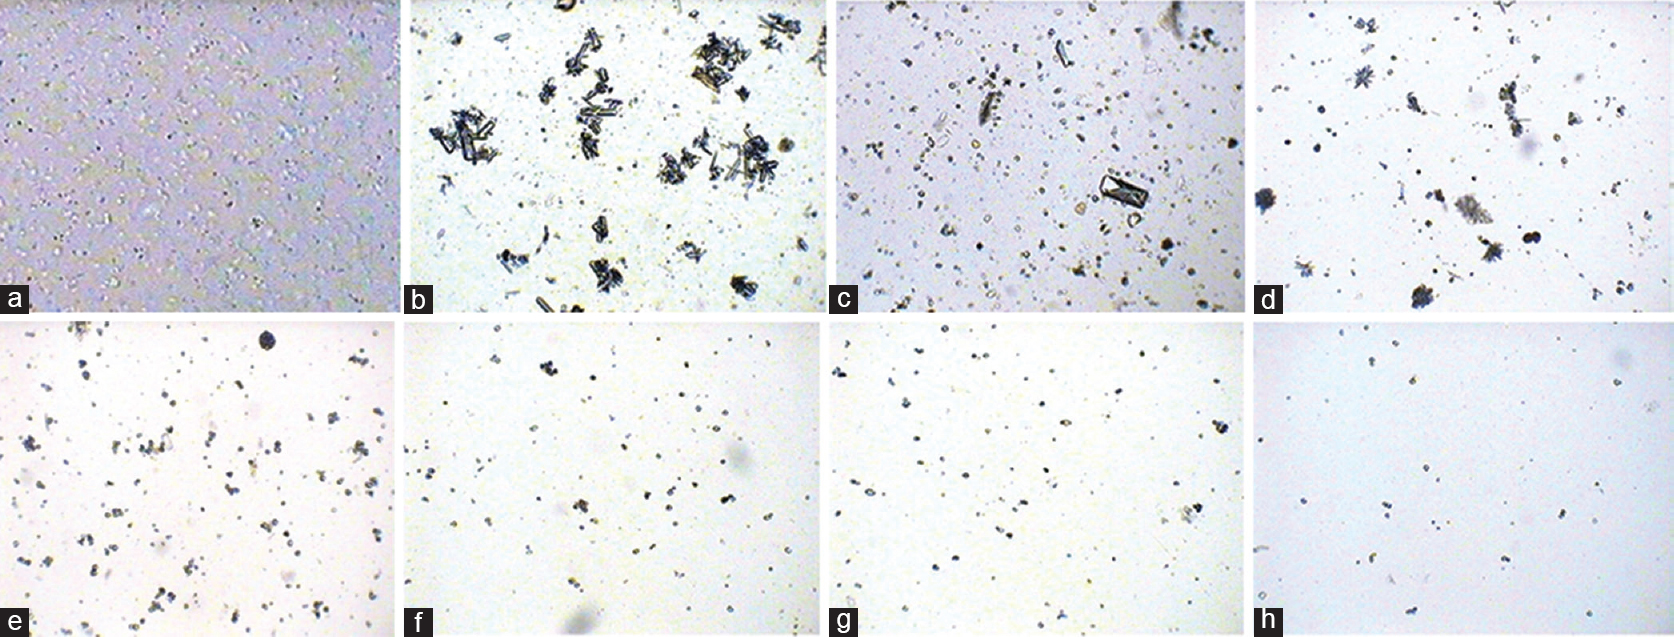 Figure 1: Effect of <i>Musa paradisiaca</i> pseudostem and standard treatment on microscopic picture of urine in rats (×100). (a) Untreated healthy control, (b) lithiatic control, (c) rat treated with <i>Musa paradisiaca</i> pseudostem at 100 mg/kg, (d) rat treated with <i>Musa paradisiaca</i> pseudostem at 150 mg/kg, (e) rat treated with <i>Musa paradisiaca</i> pseudostem at 200 mg/kg, (f) rat treated with <i>Musa paradisiaca</i> pseudostem at 250 mg/kg, (g) rat treated with <i>Musa paradisiaca</i> pseudostem at 300 mg/kg, (h) rat treated with cystone at 100 mg/kg body weight